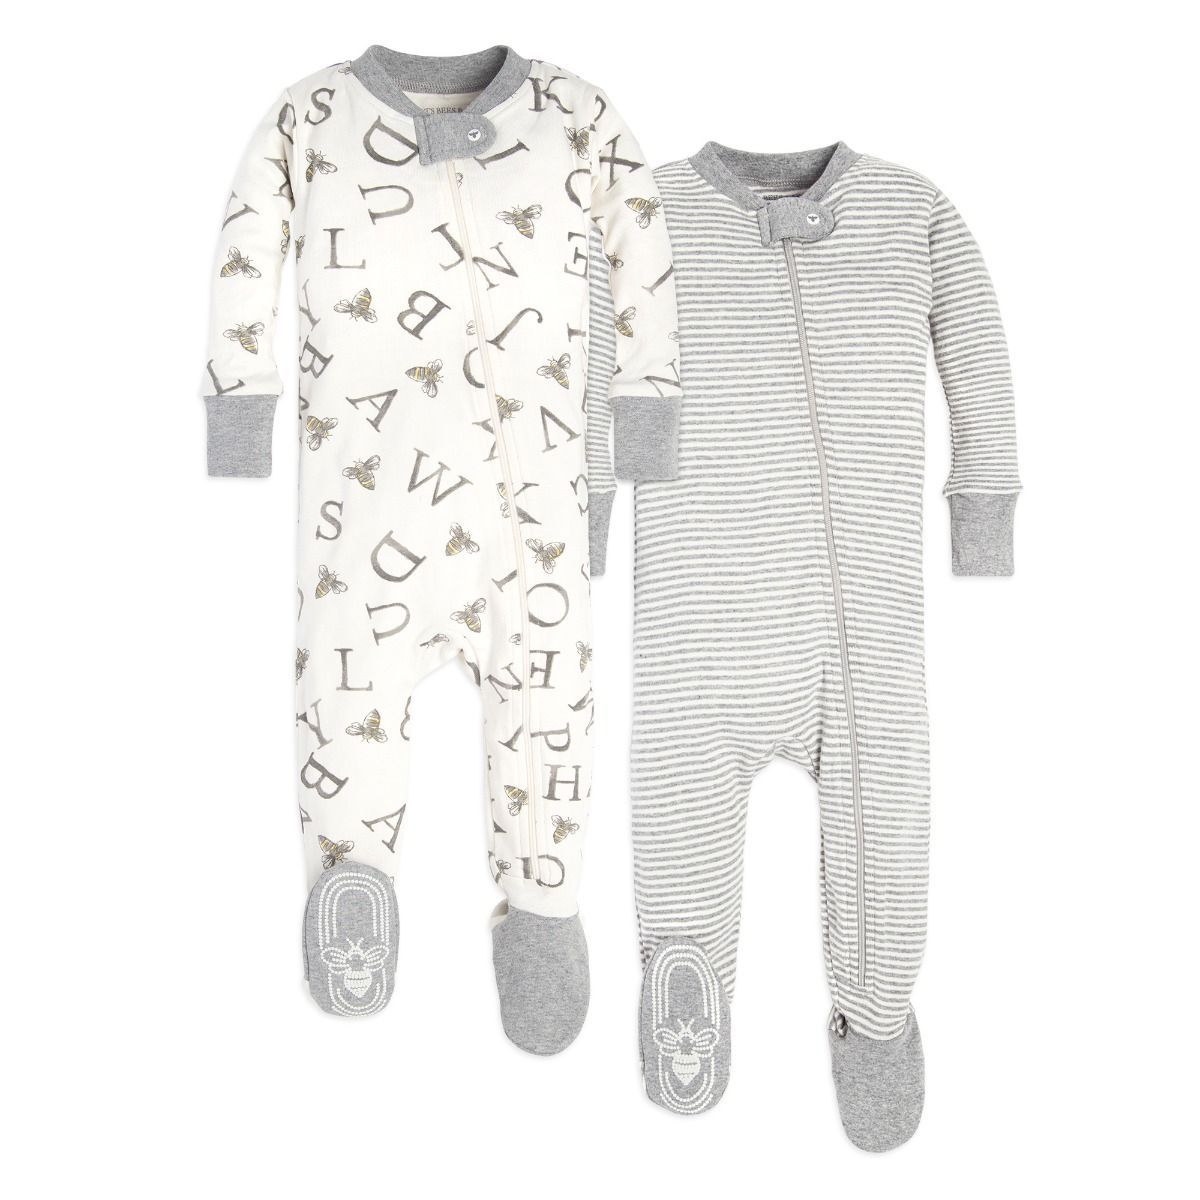 Pick Flower Unisex Long Sleeve Baby Gown Baby Bodysuit Unionsuit Footed Pajamas Romper Jumpsuit